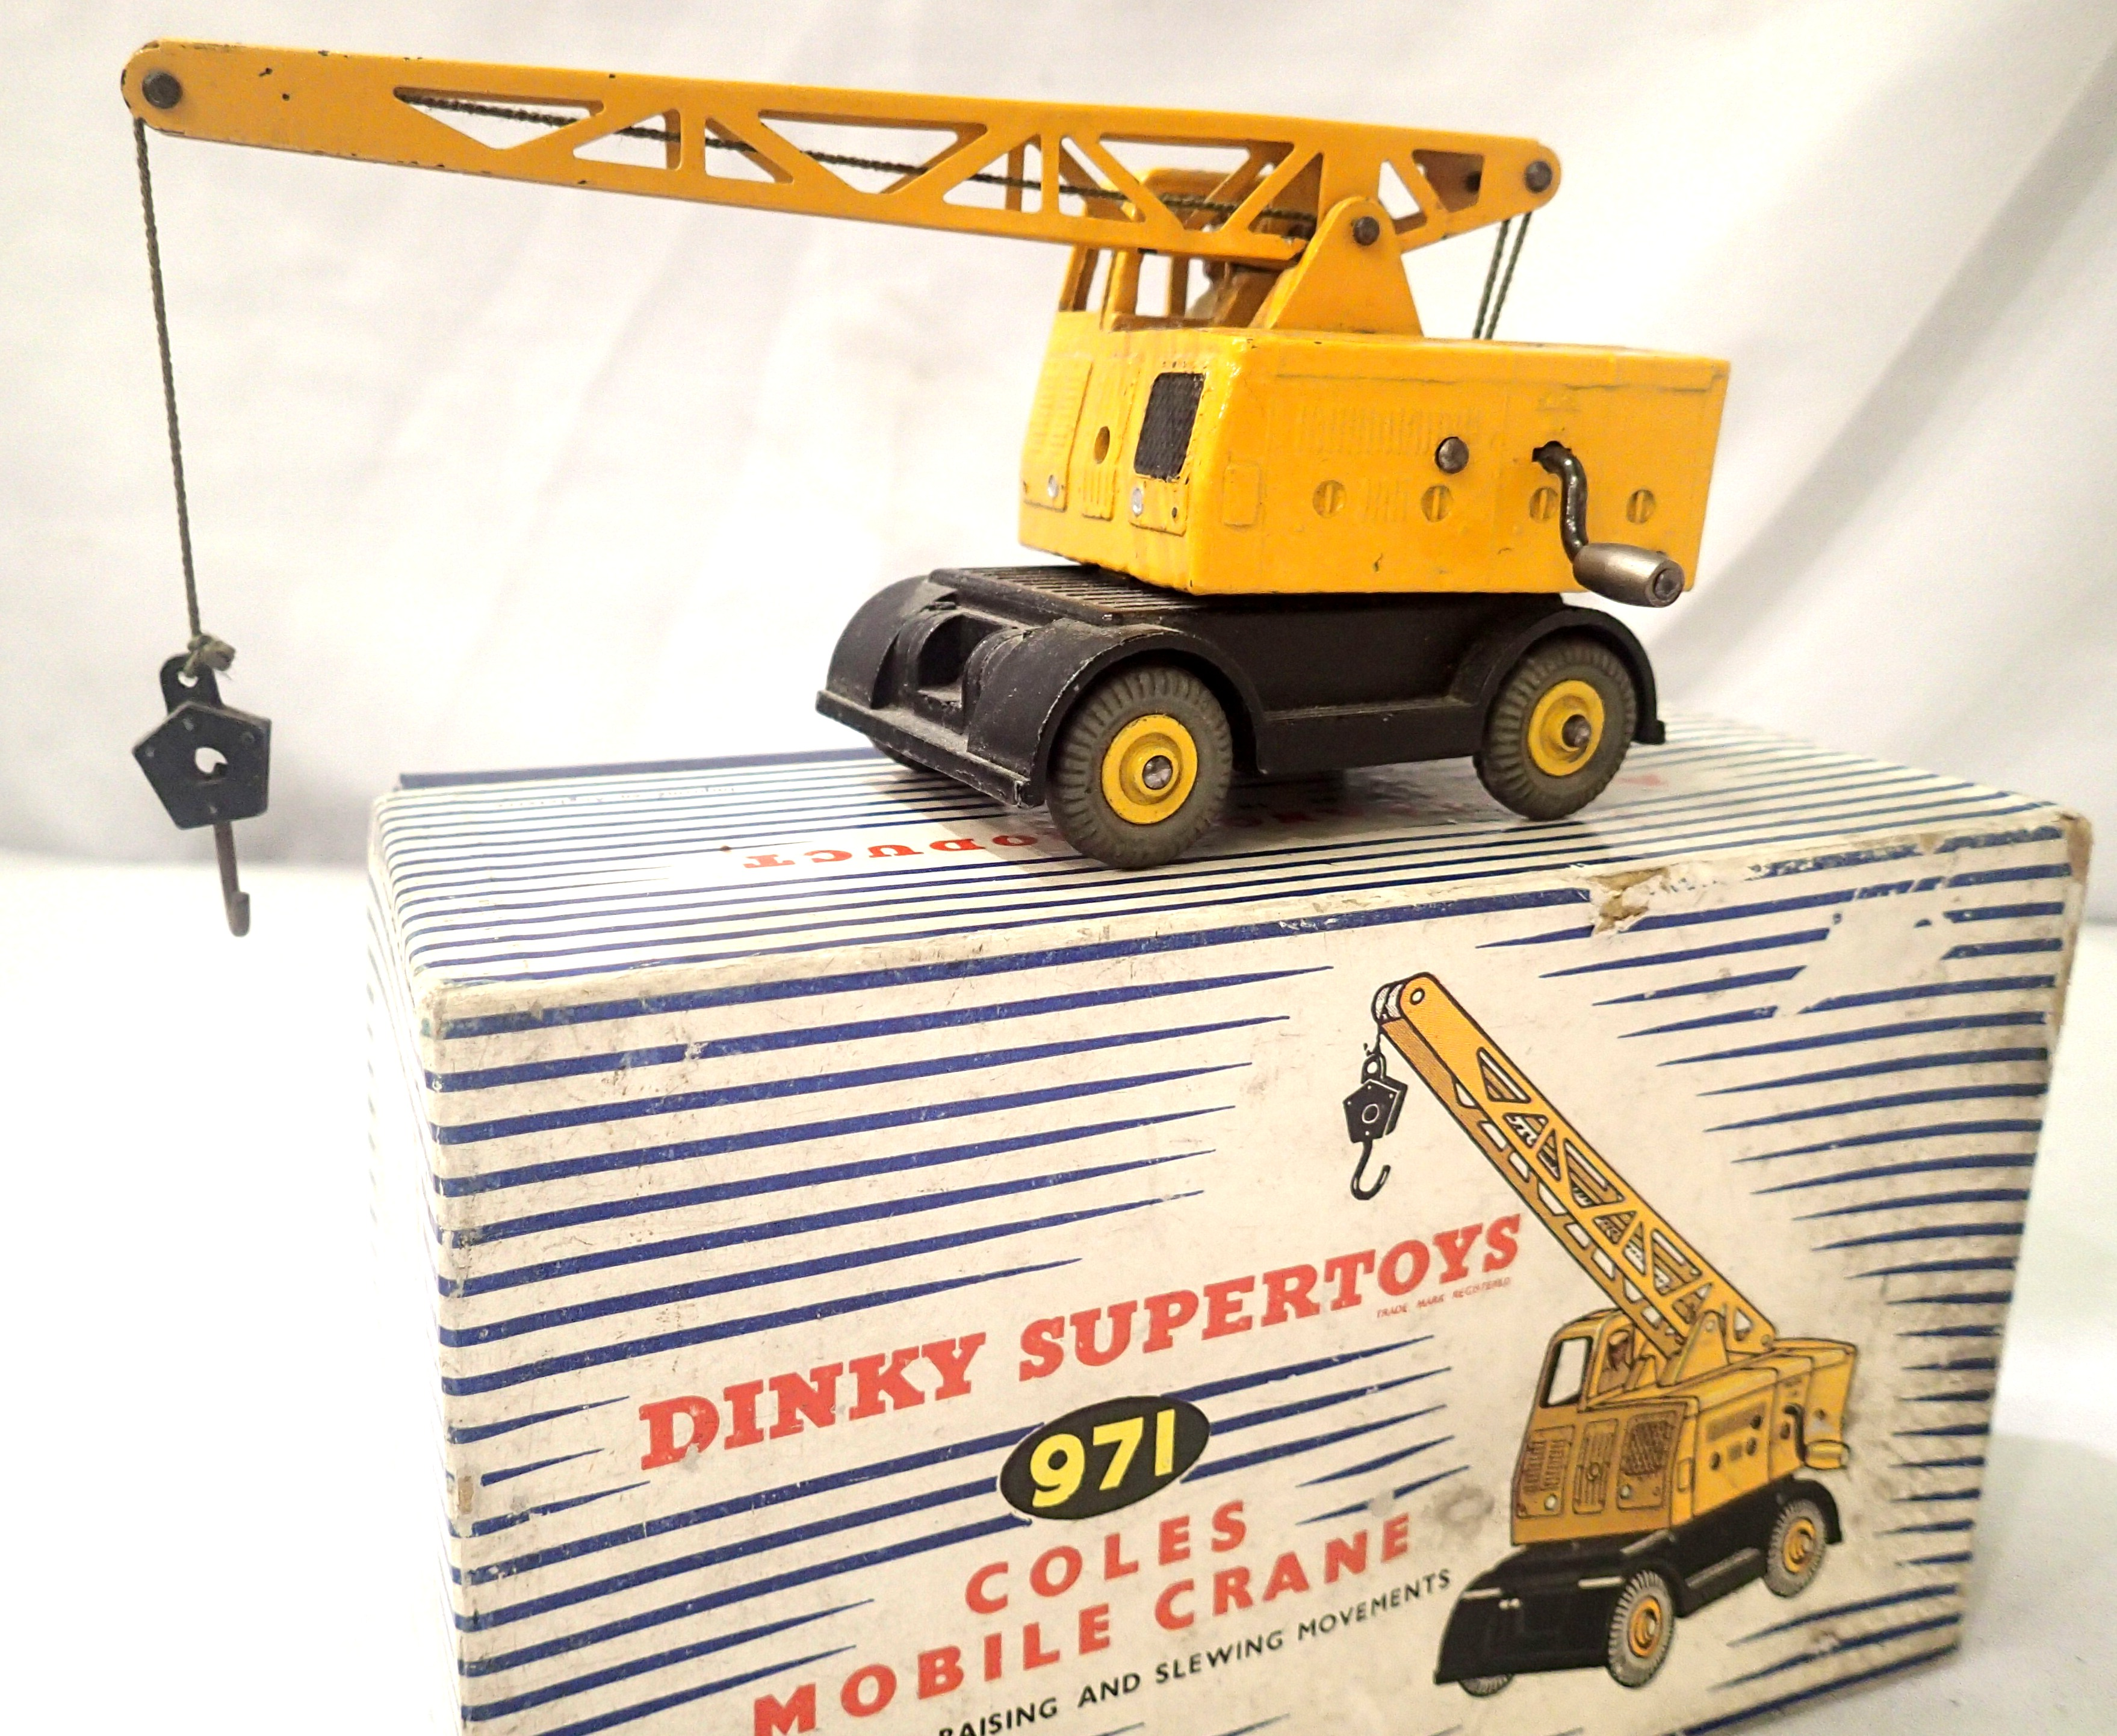 Dinky 971 Coles Mobile crane, boxed. P&P Group 1 (£14+VAT for the first lot and £1+VAT for